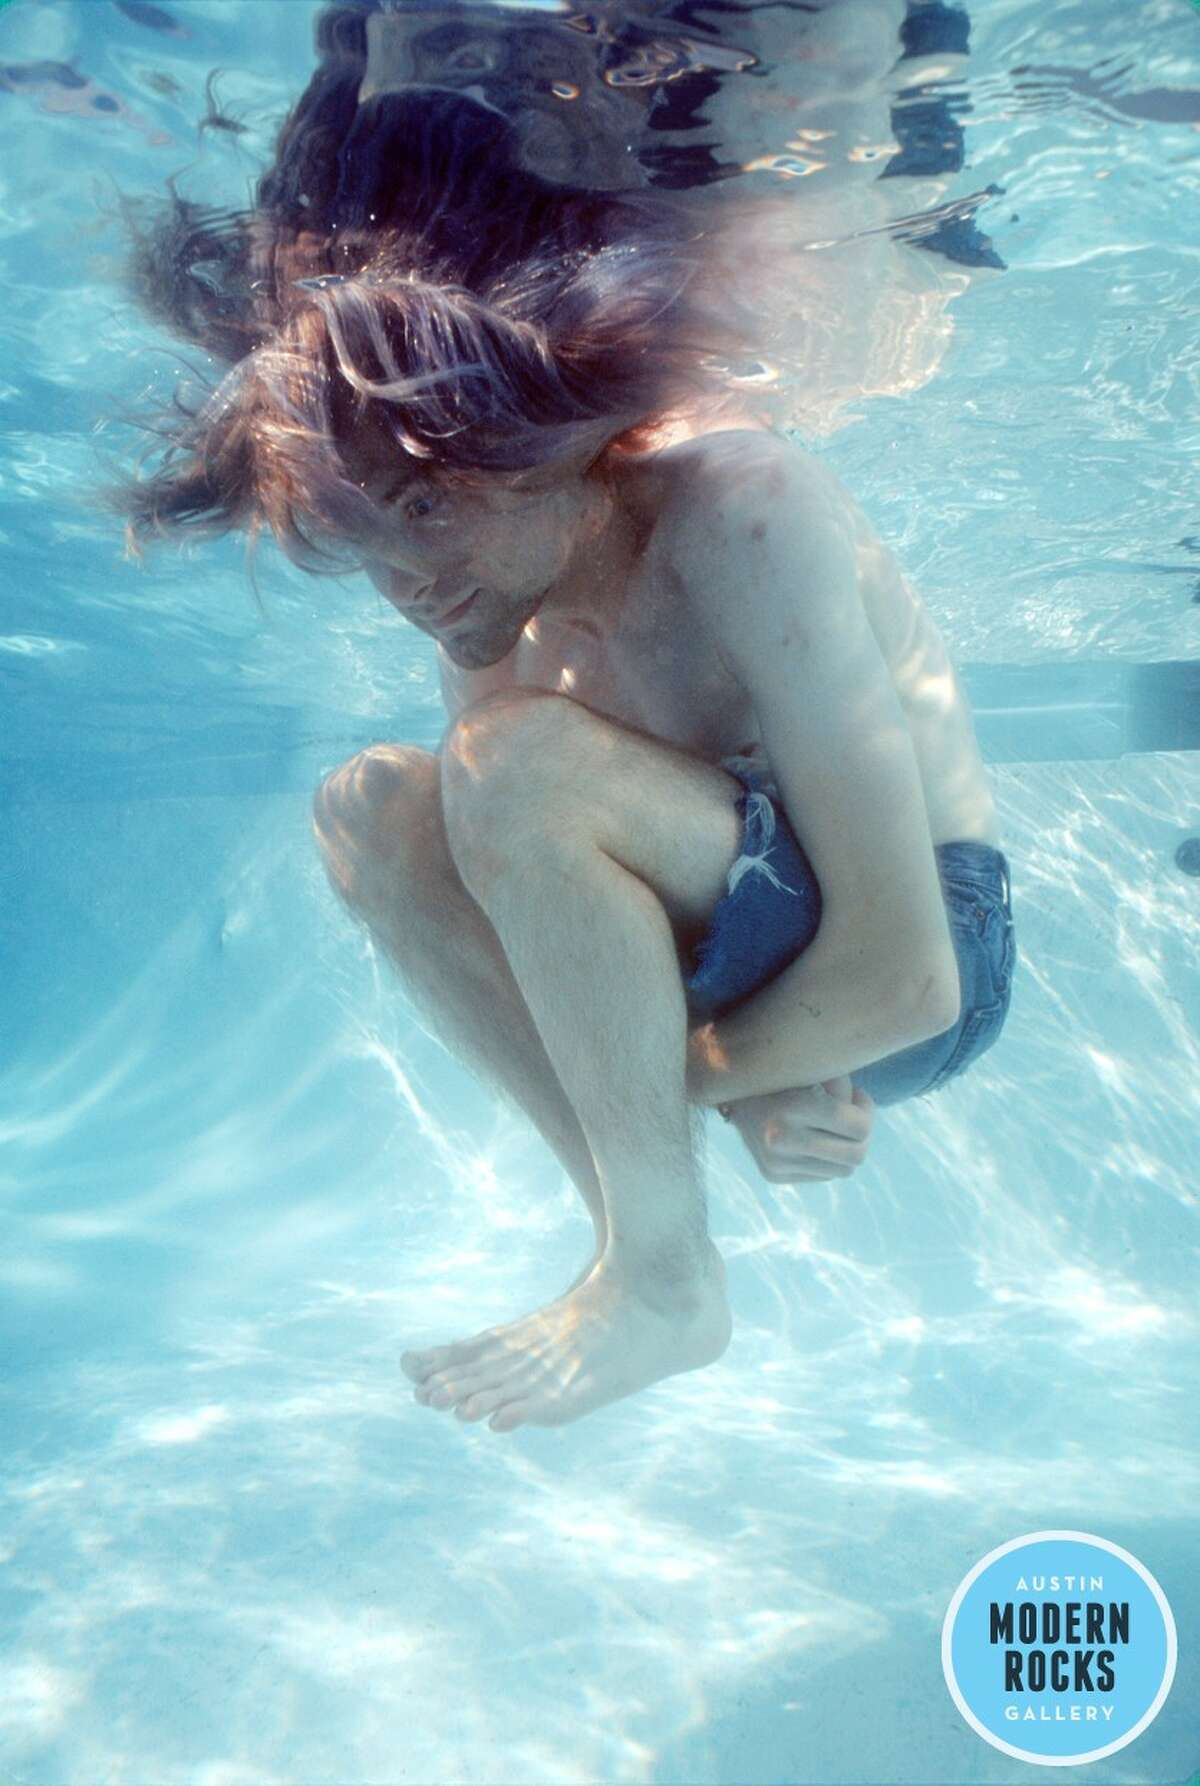 Nirvana frontman Kurt Cobain underwater in a Los Angeles motel pool for a